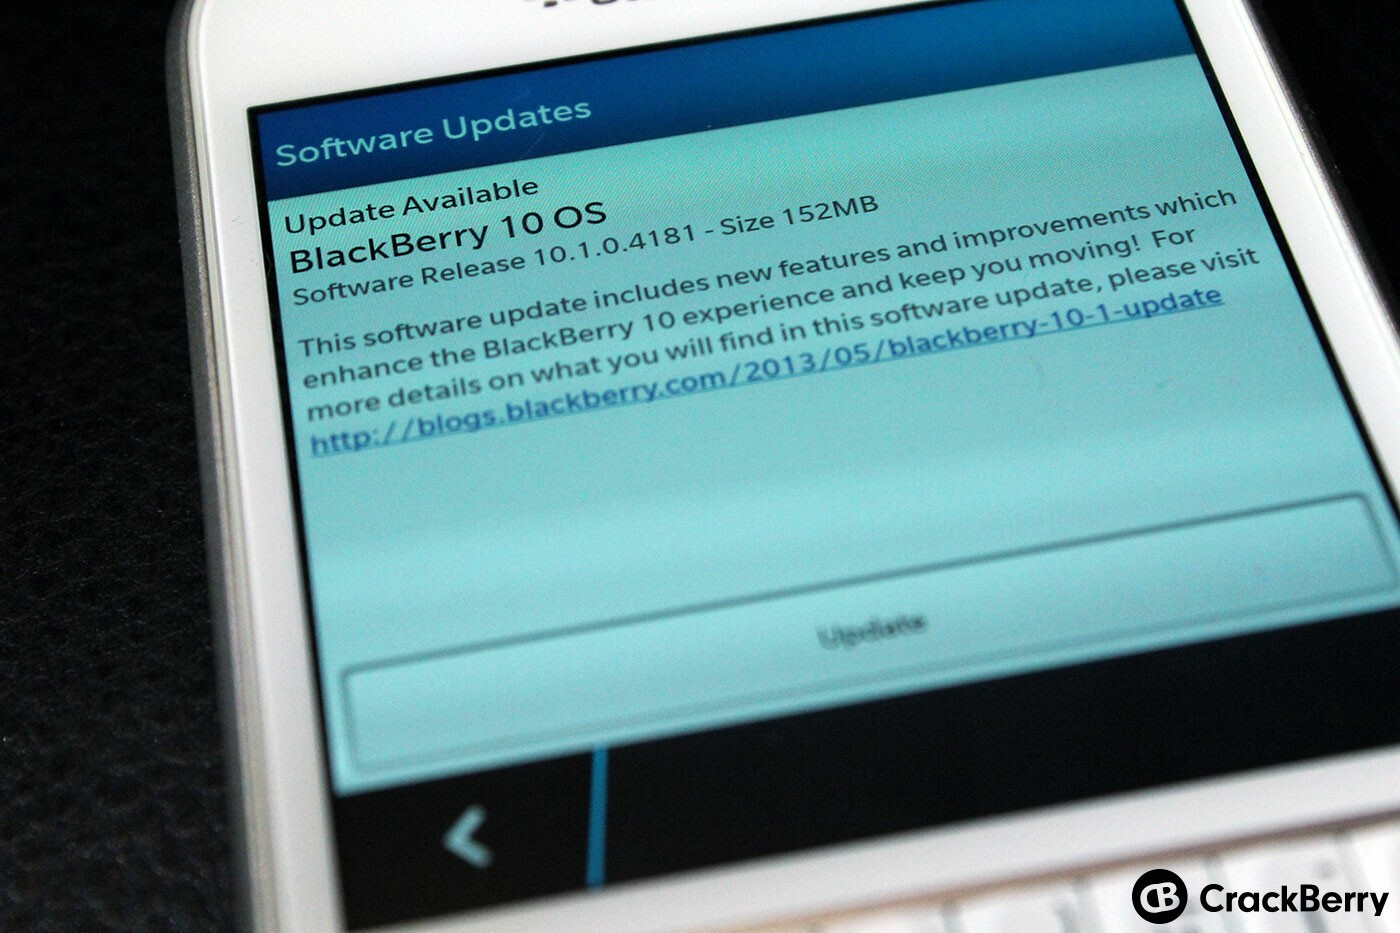 What's new in BlackBerry 10.1 MR?